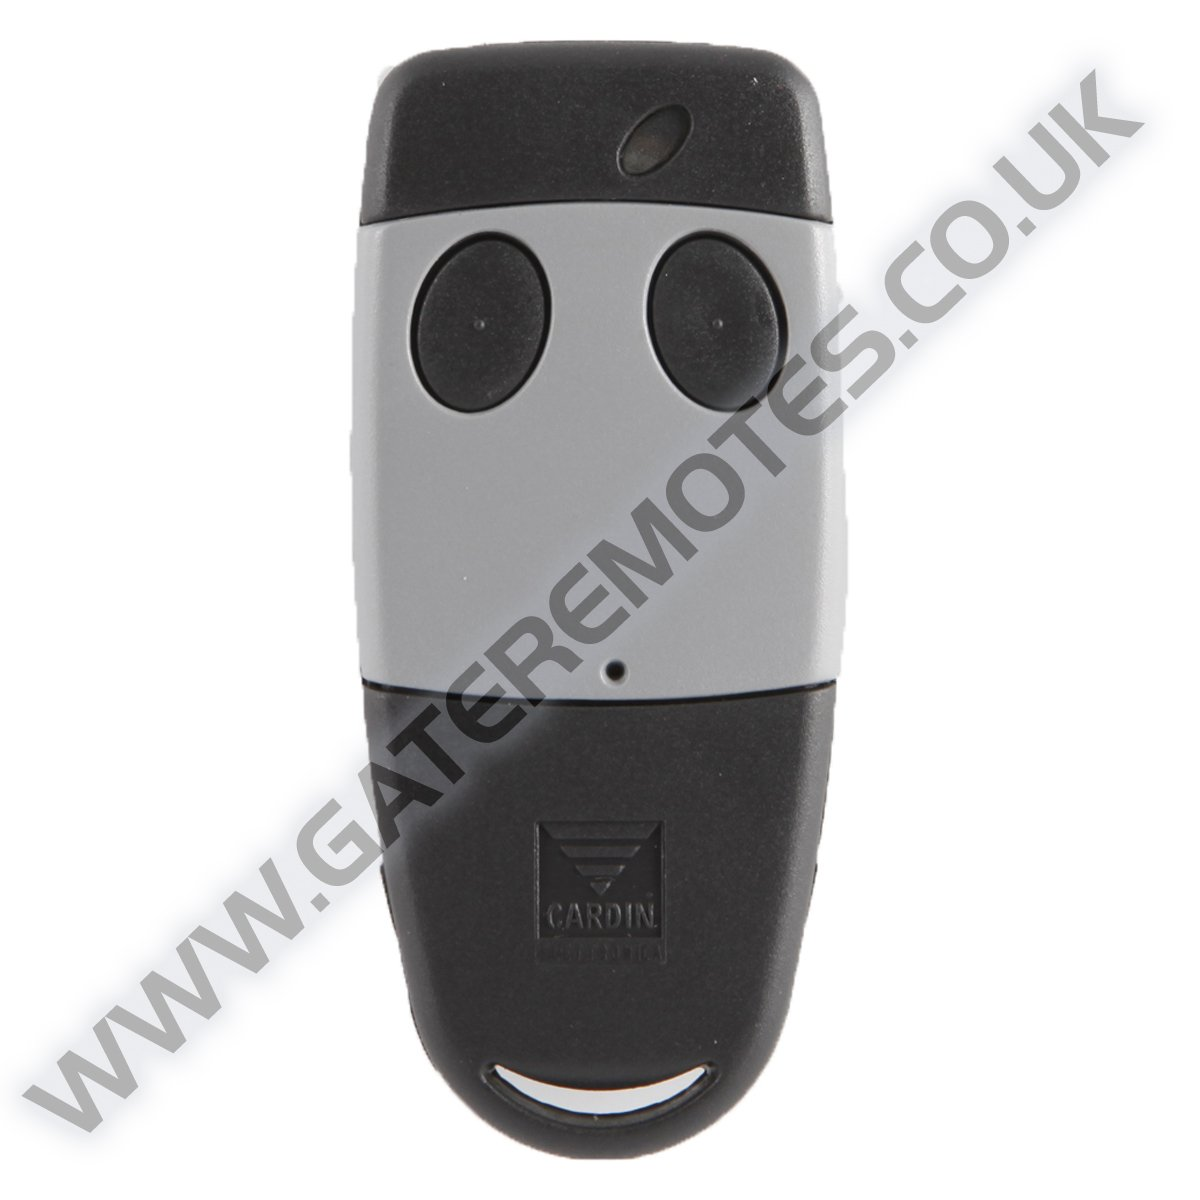 Cardin S449 2 Channel Gate Remote Gateremotes Co Uk